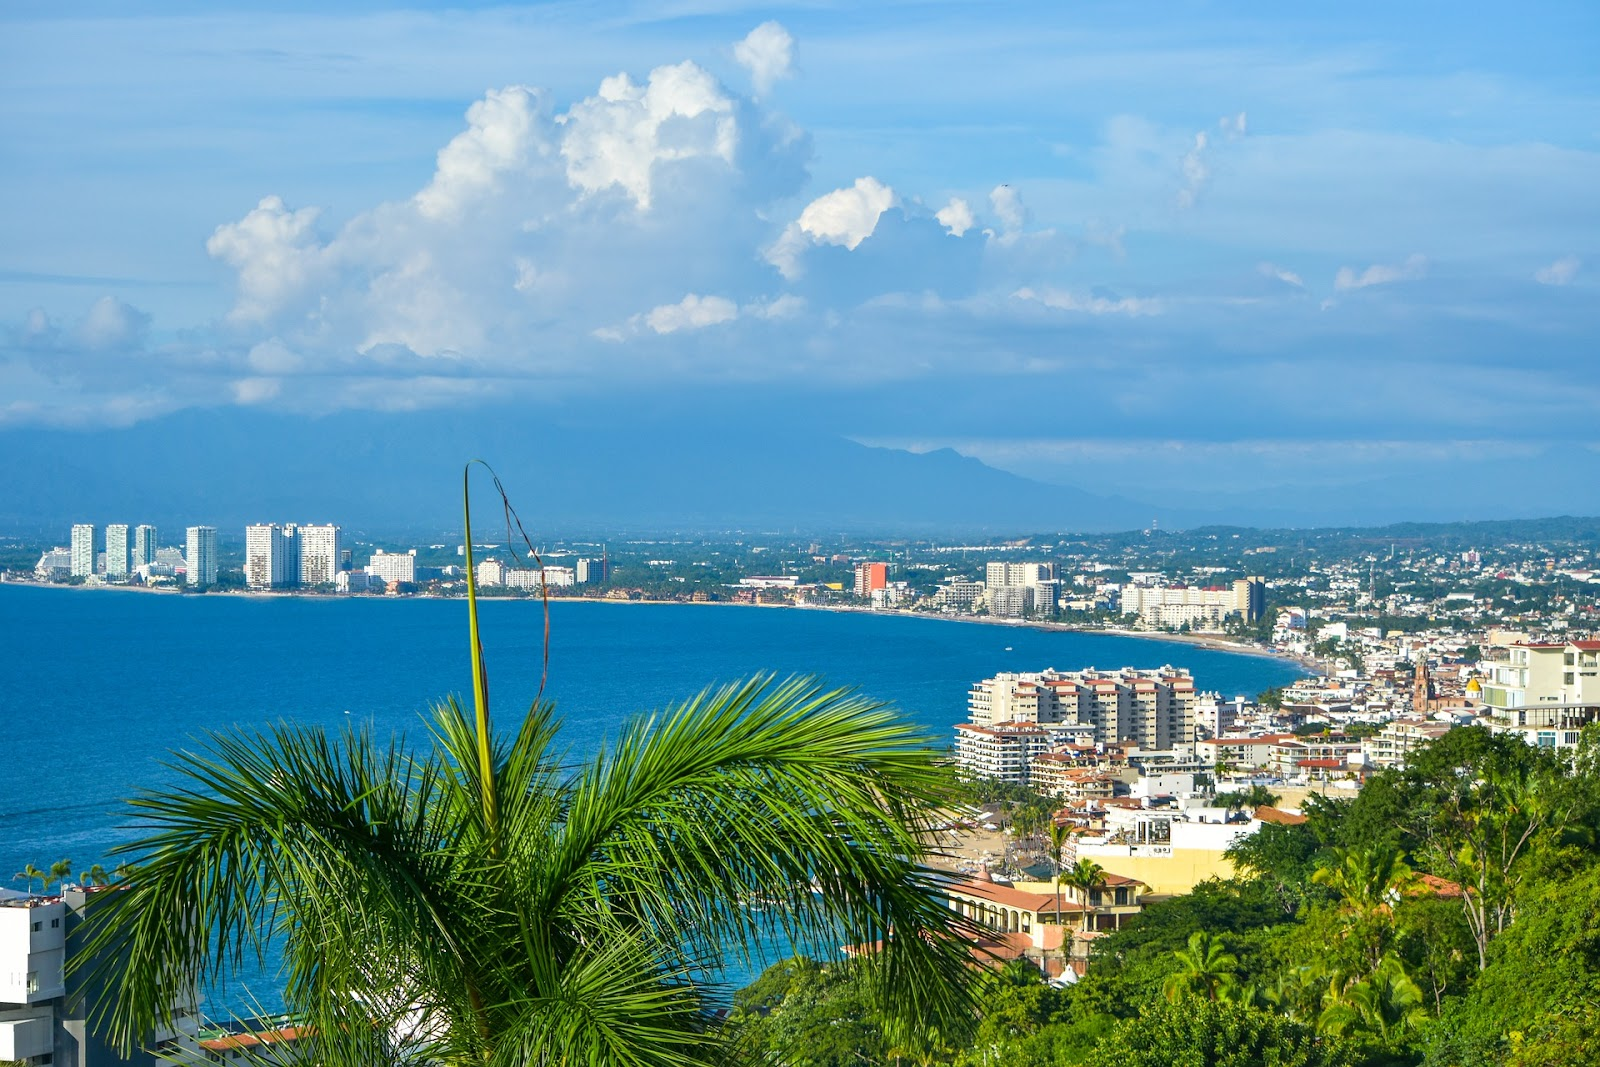 Viewpoint of Puerto Vallarta in Mexico